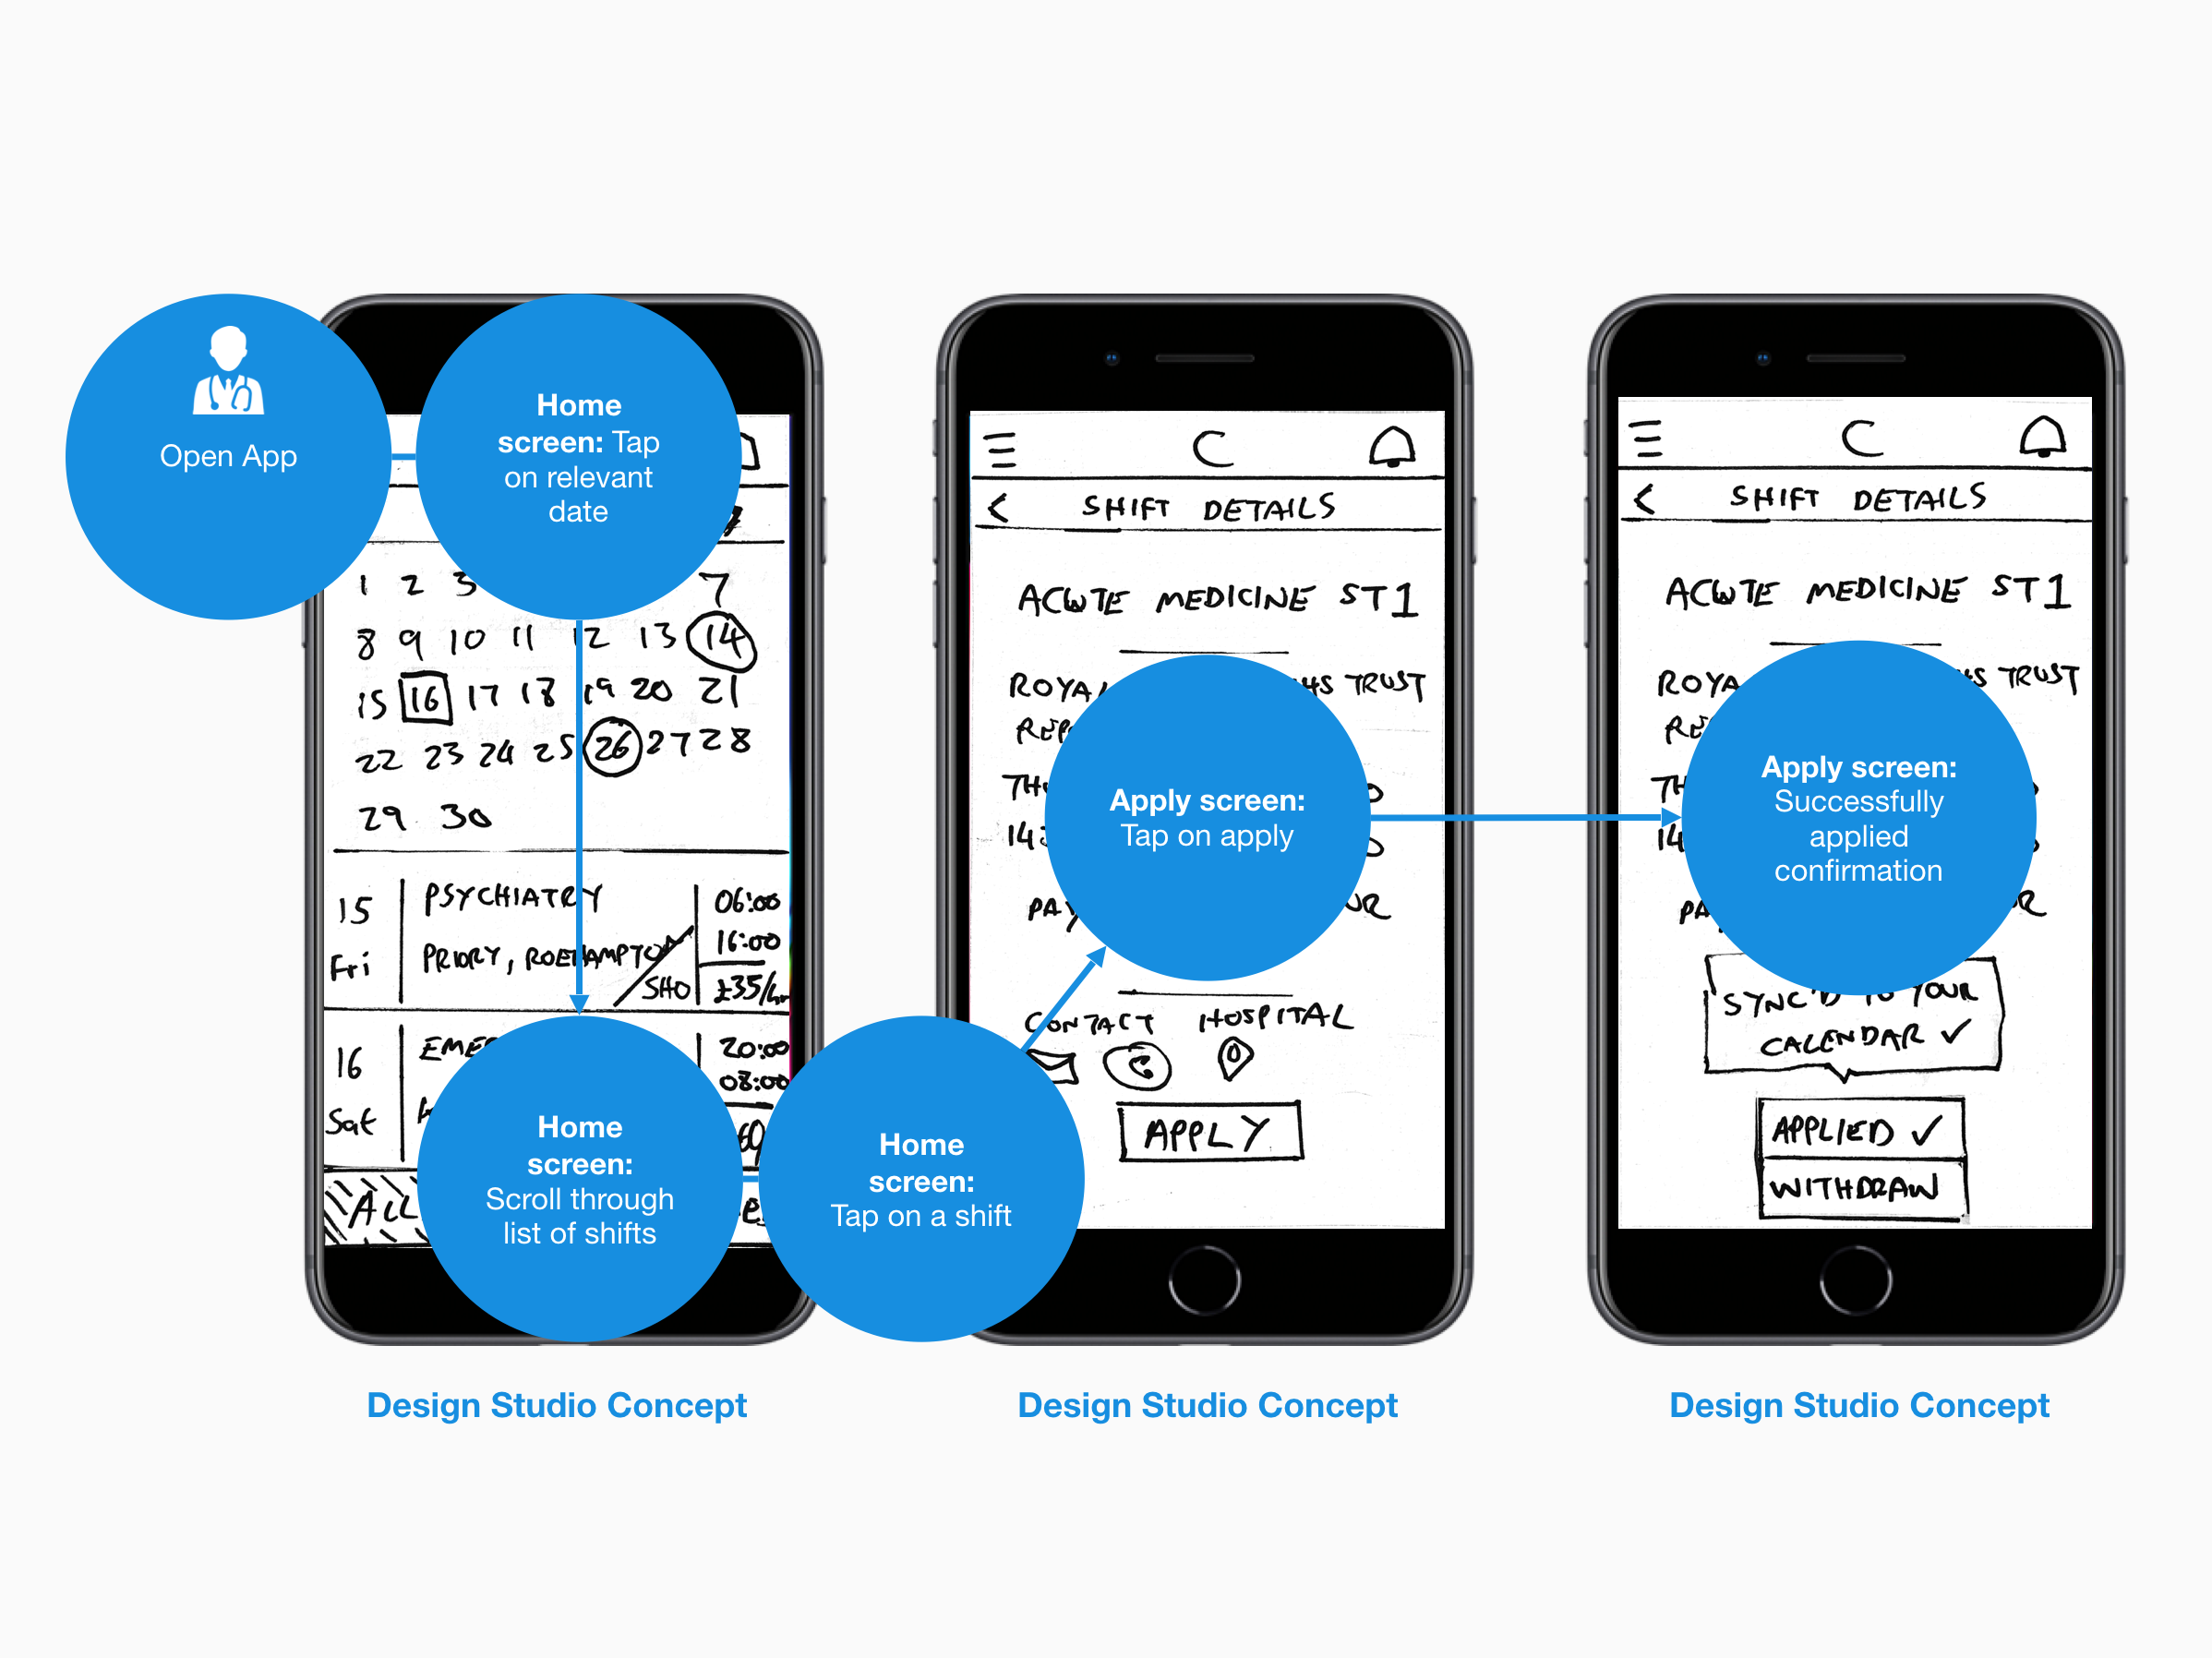 User flow - Alongside the prototype we produced a user flow, visualising the path and interactions users would take though the product to complete their tasks. In our case the flow was very streamlined, consisting of 6 steps.